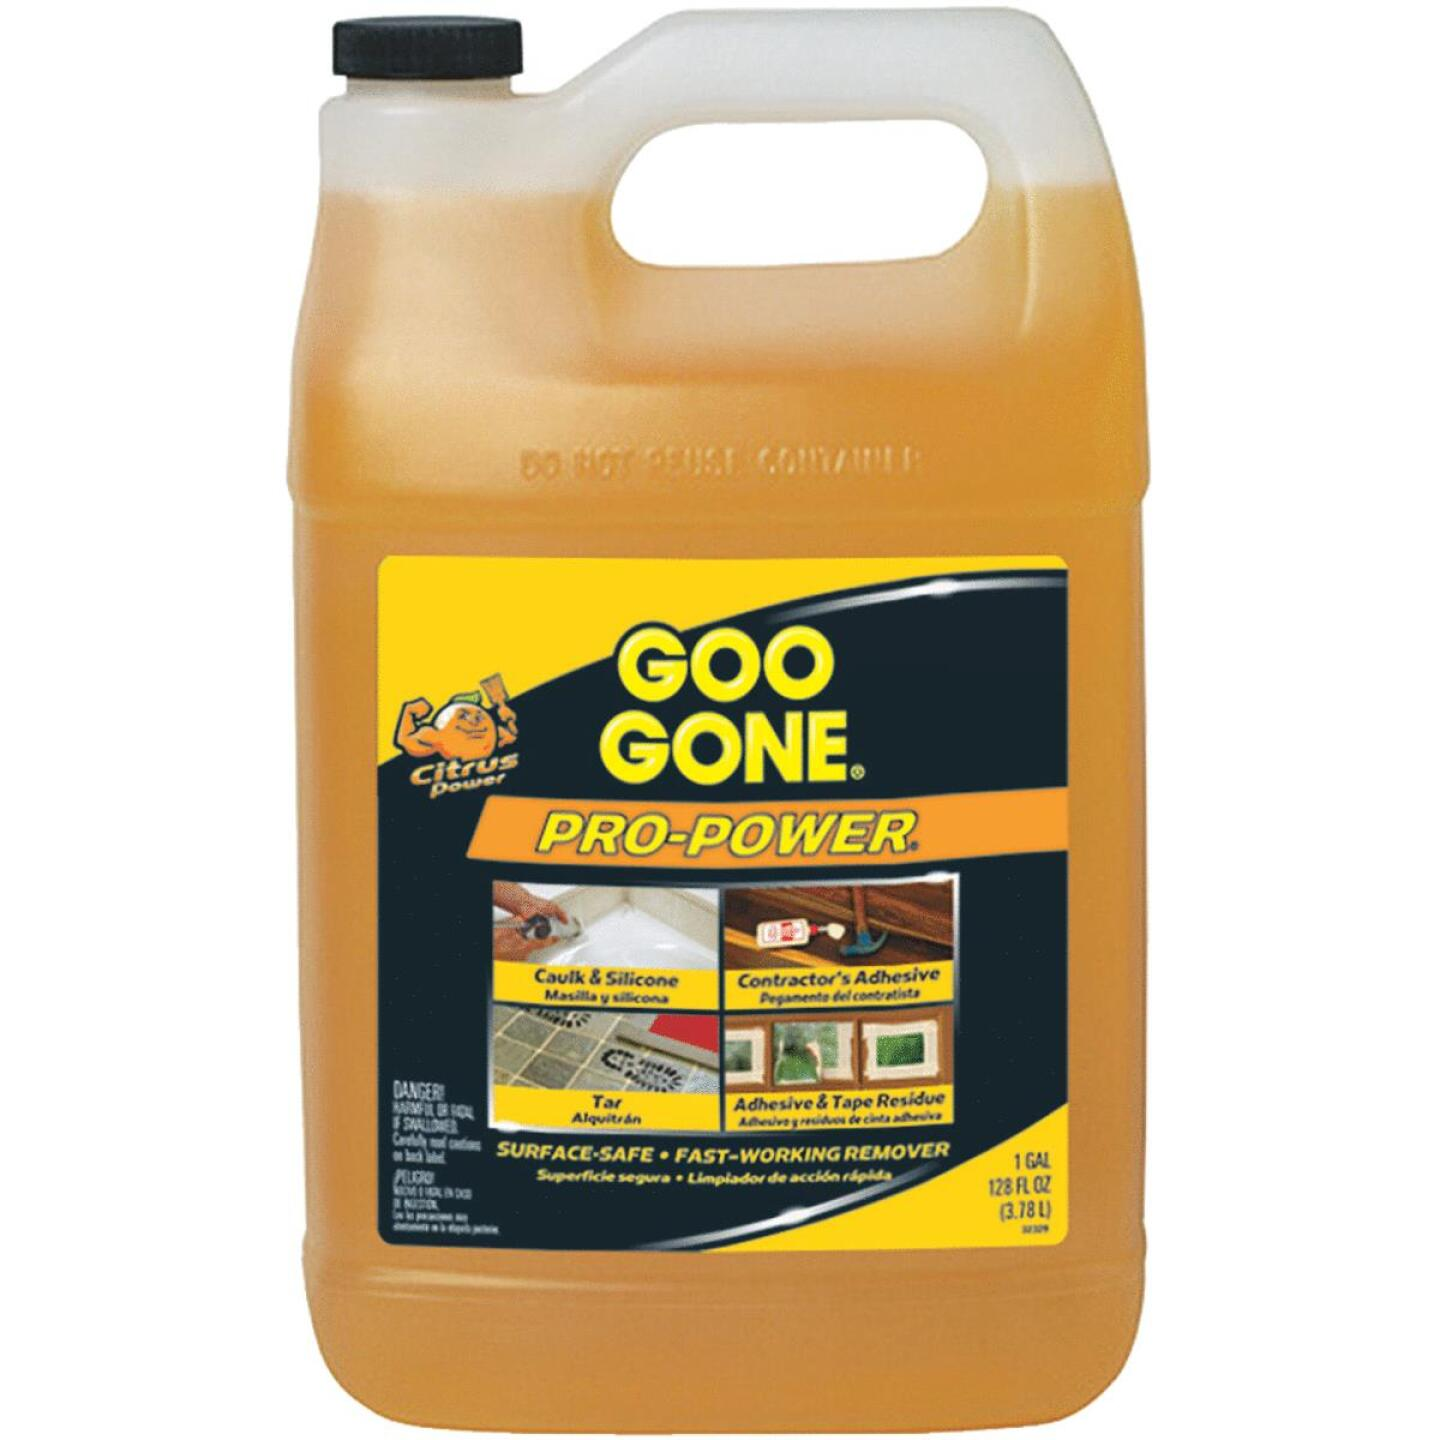 Goo Gone 1 Gal. Pro-Power Adhesive Remover Image 316